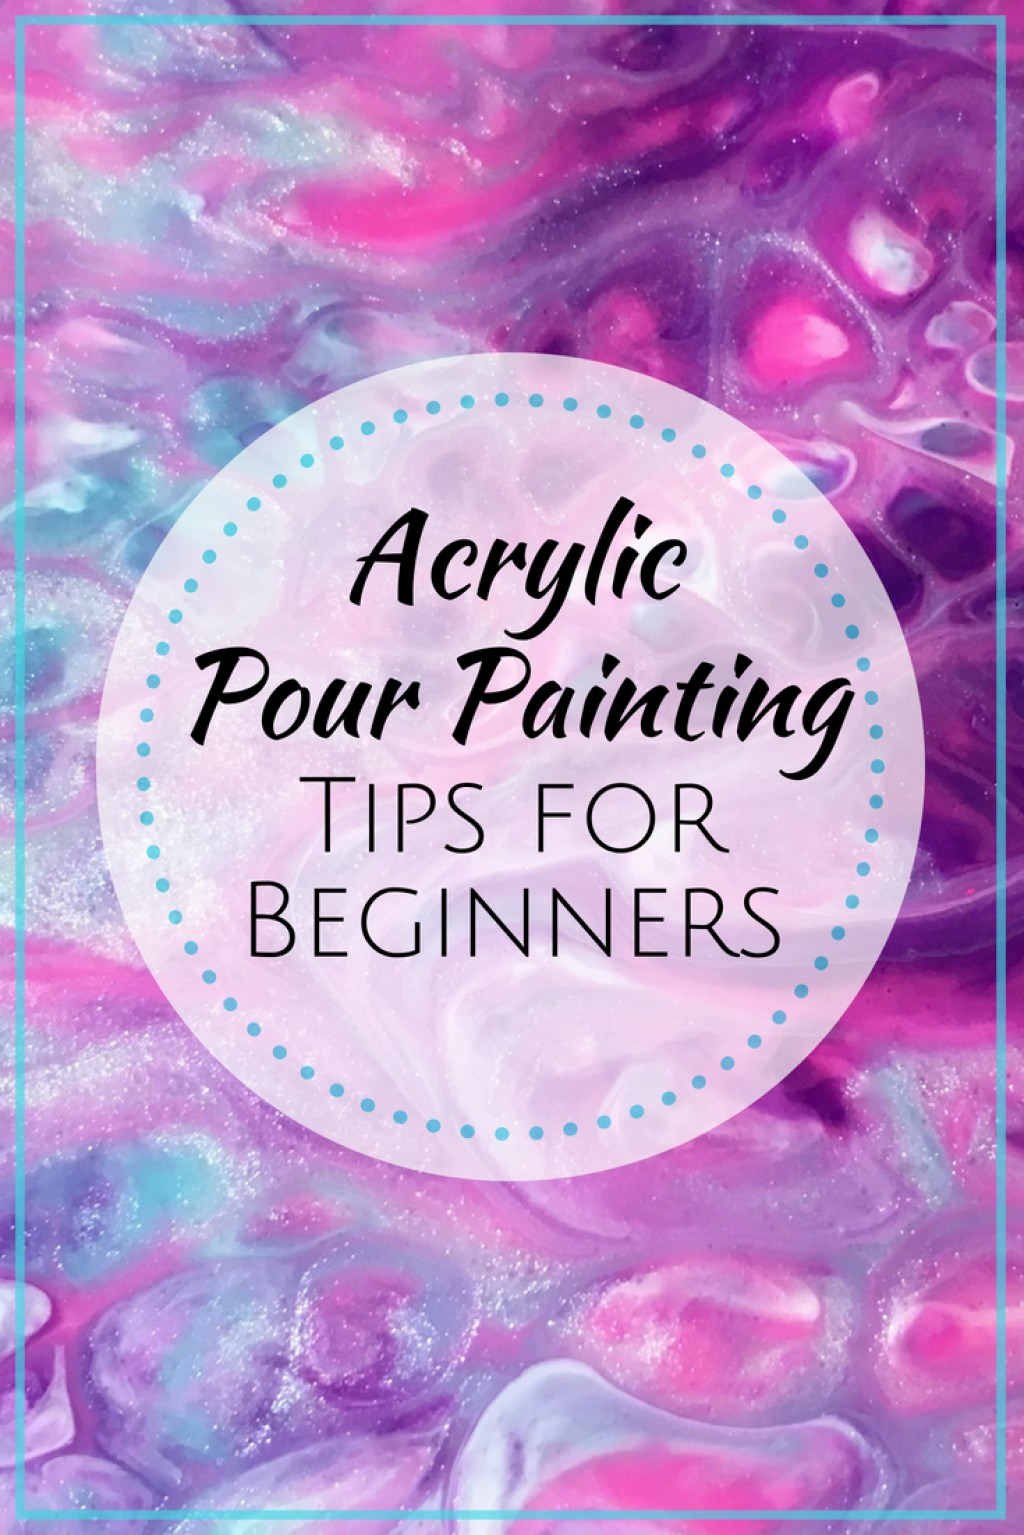 Acrylic Pour Painting Tips A List For Beginners Feltmagnet